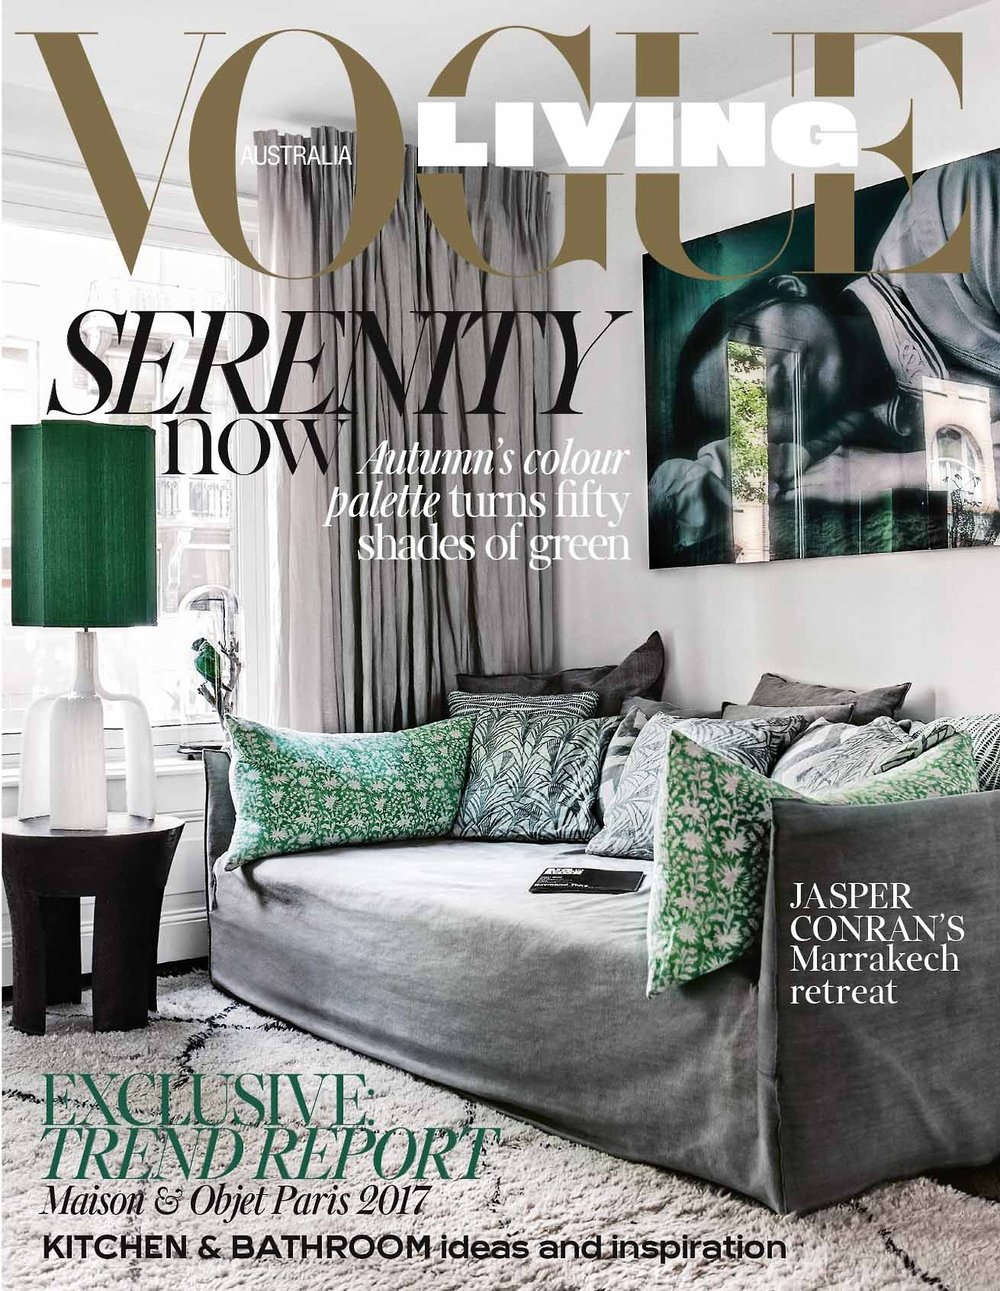 JANUARY 2017 | VOGUE - ZETLAND TERRACE